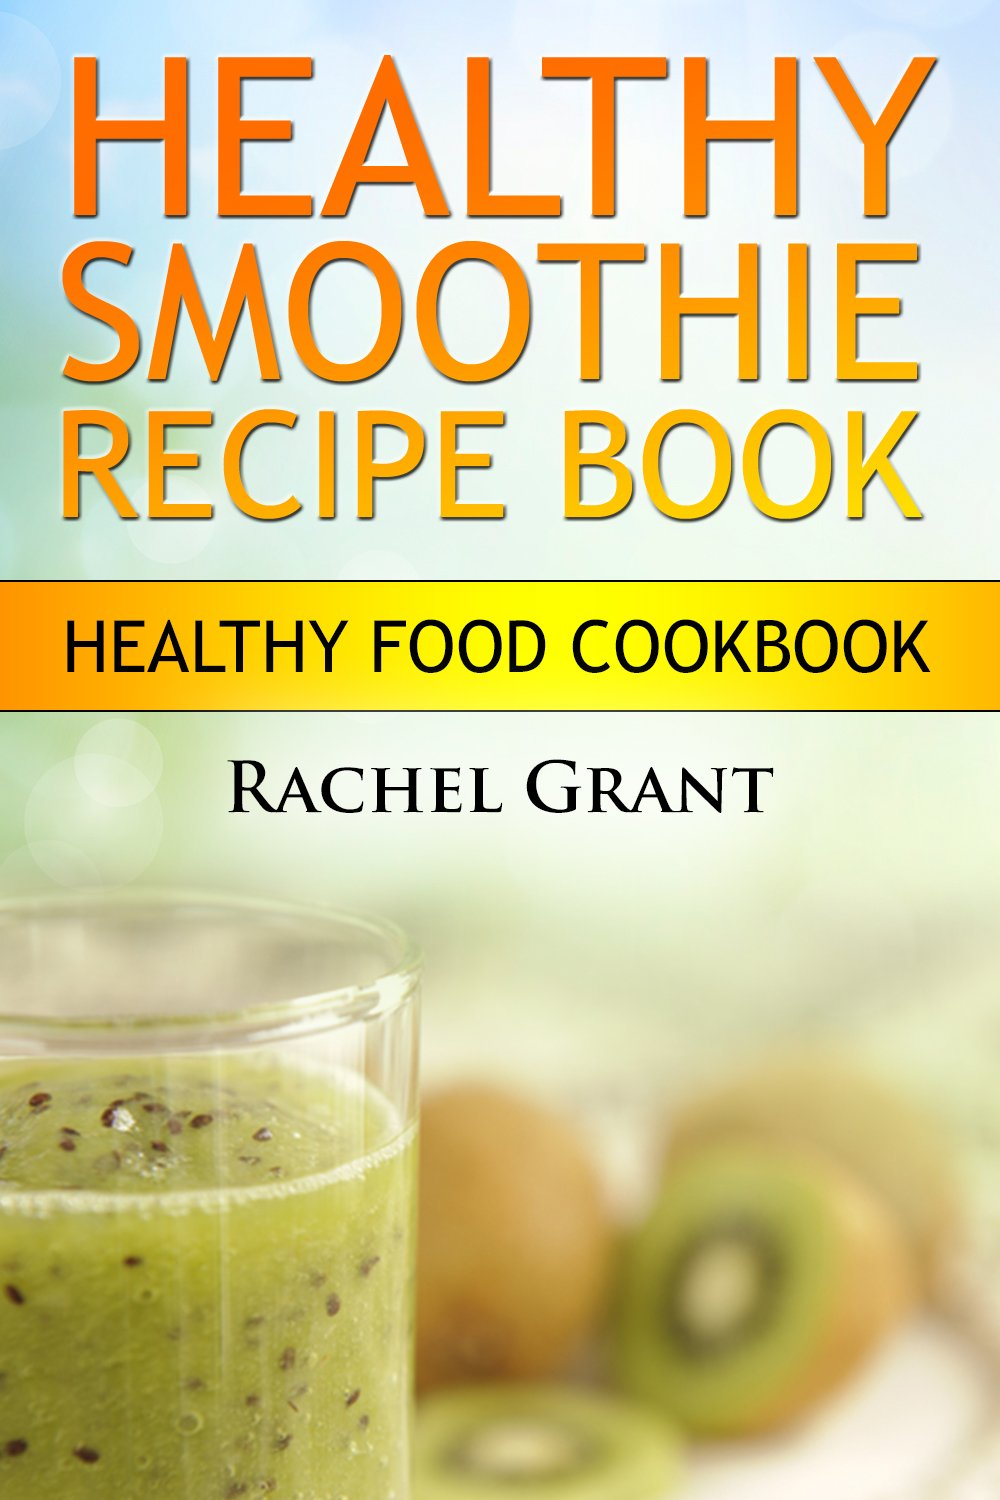 Rachel-Grant-Healthy-Smoothie-Recipe-Book